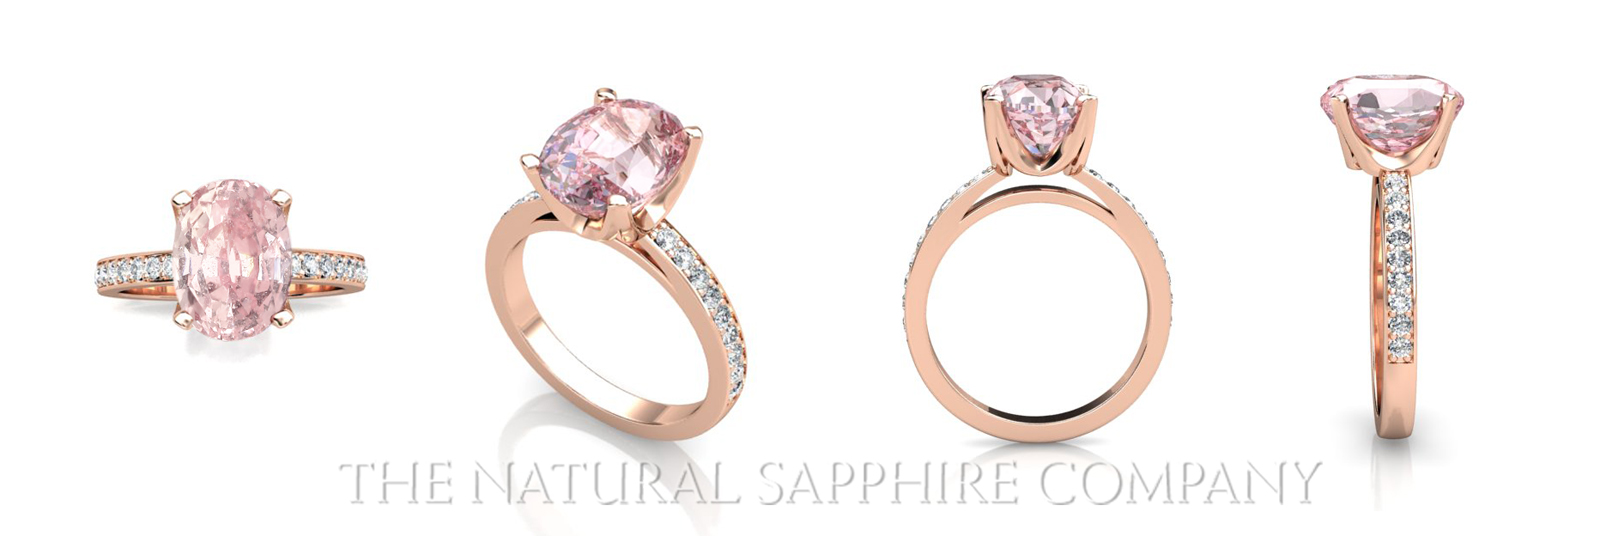 rose rings morganite products art peach set an ring il deco styled engagement fullxfull pink bridal gold